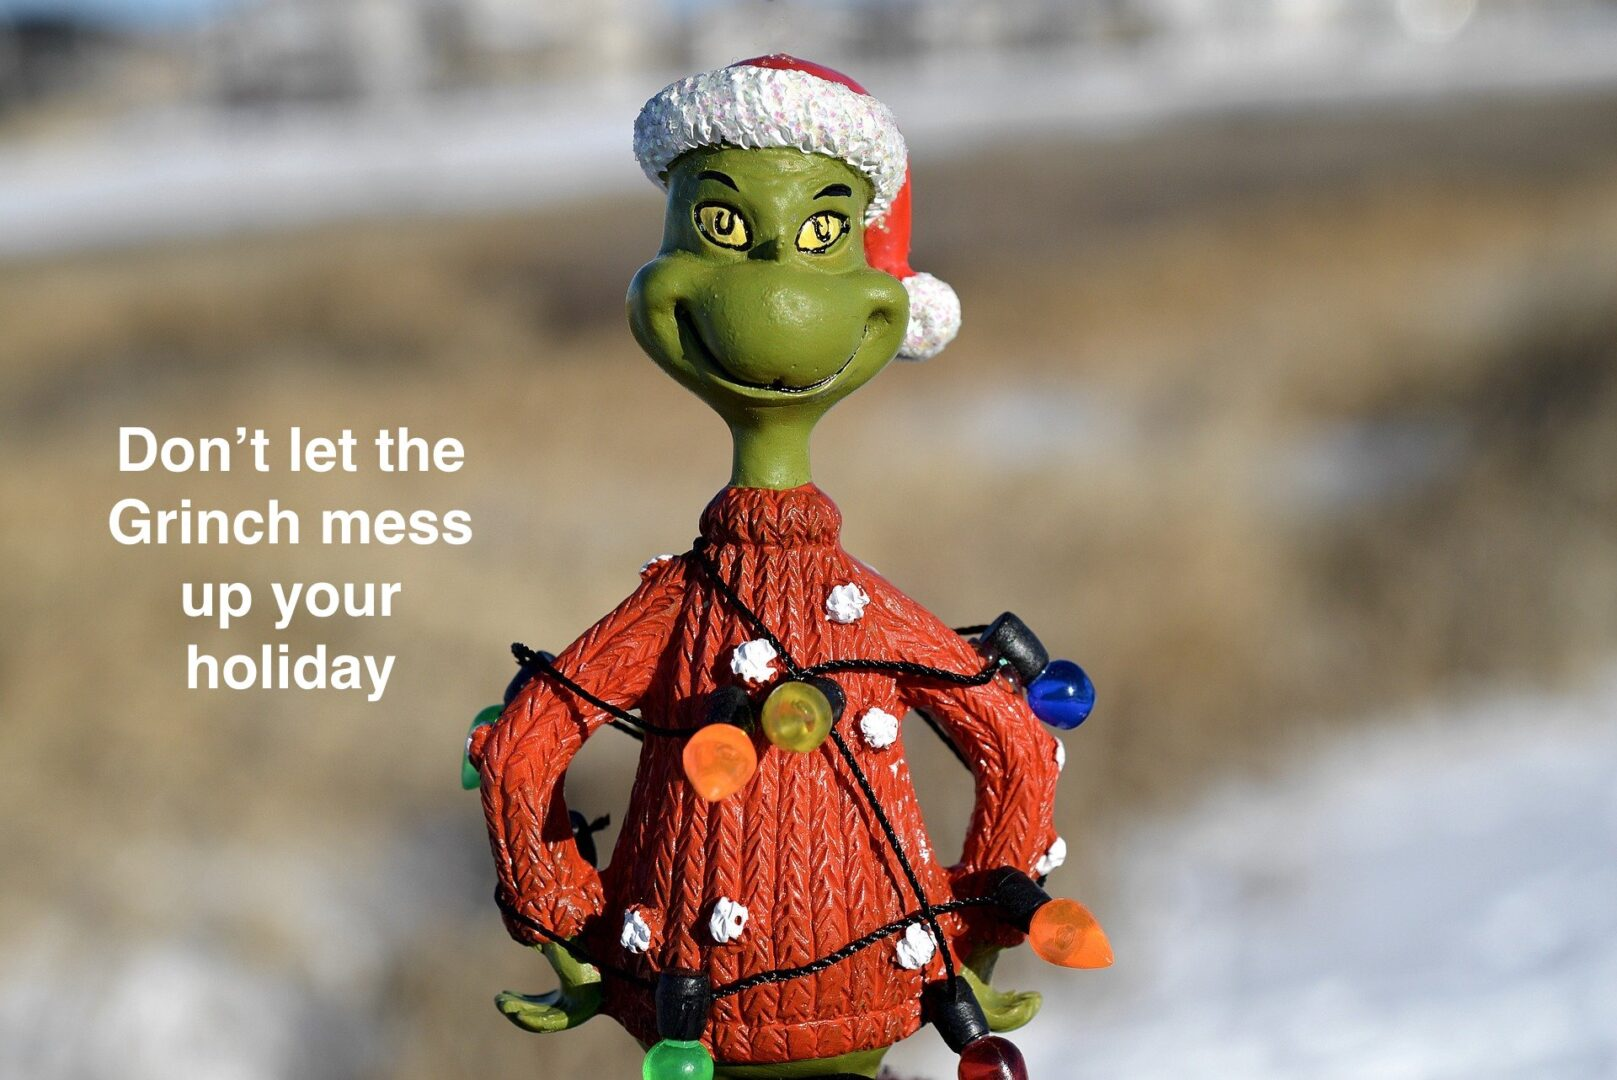 Don't let the Grinch mess up your holiday